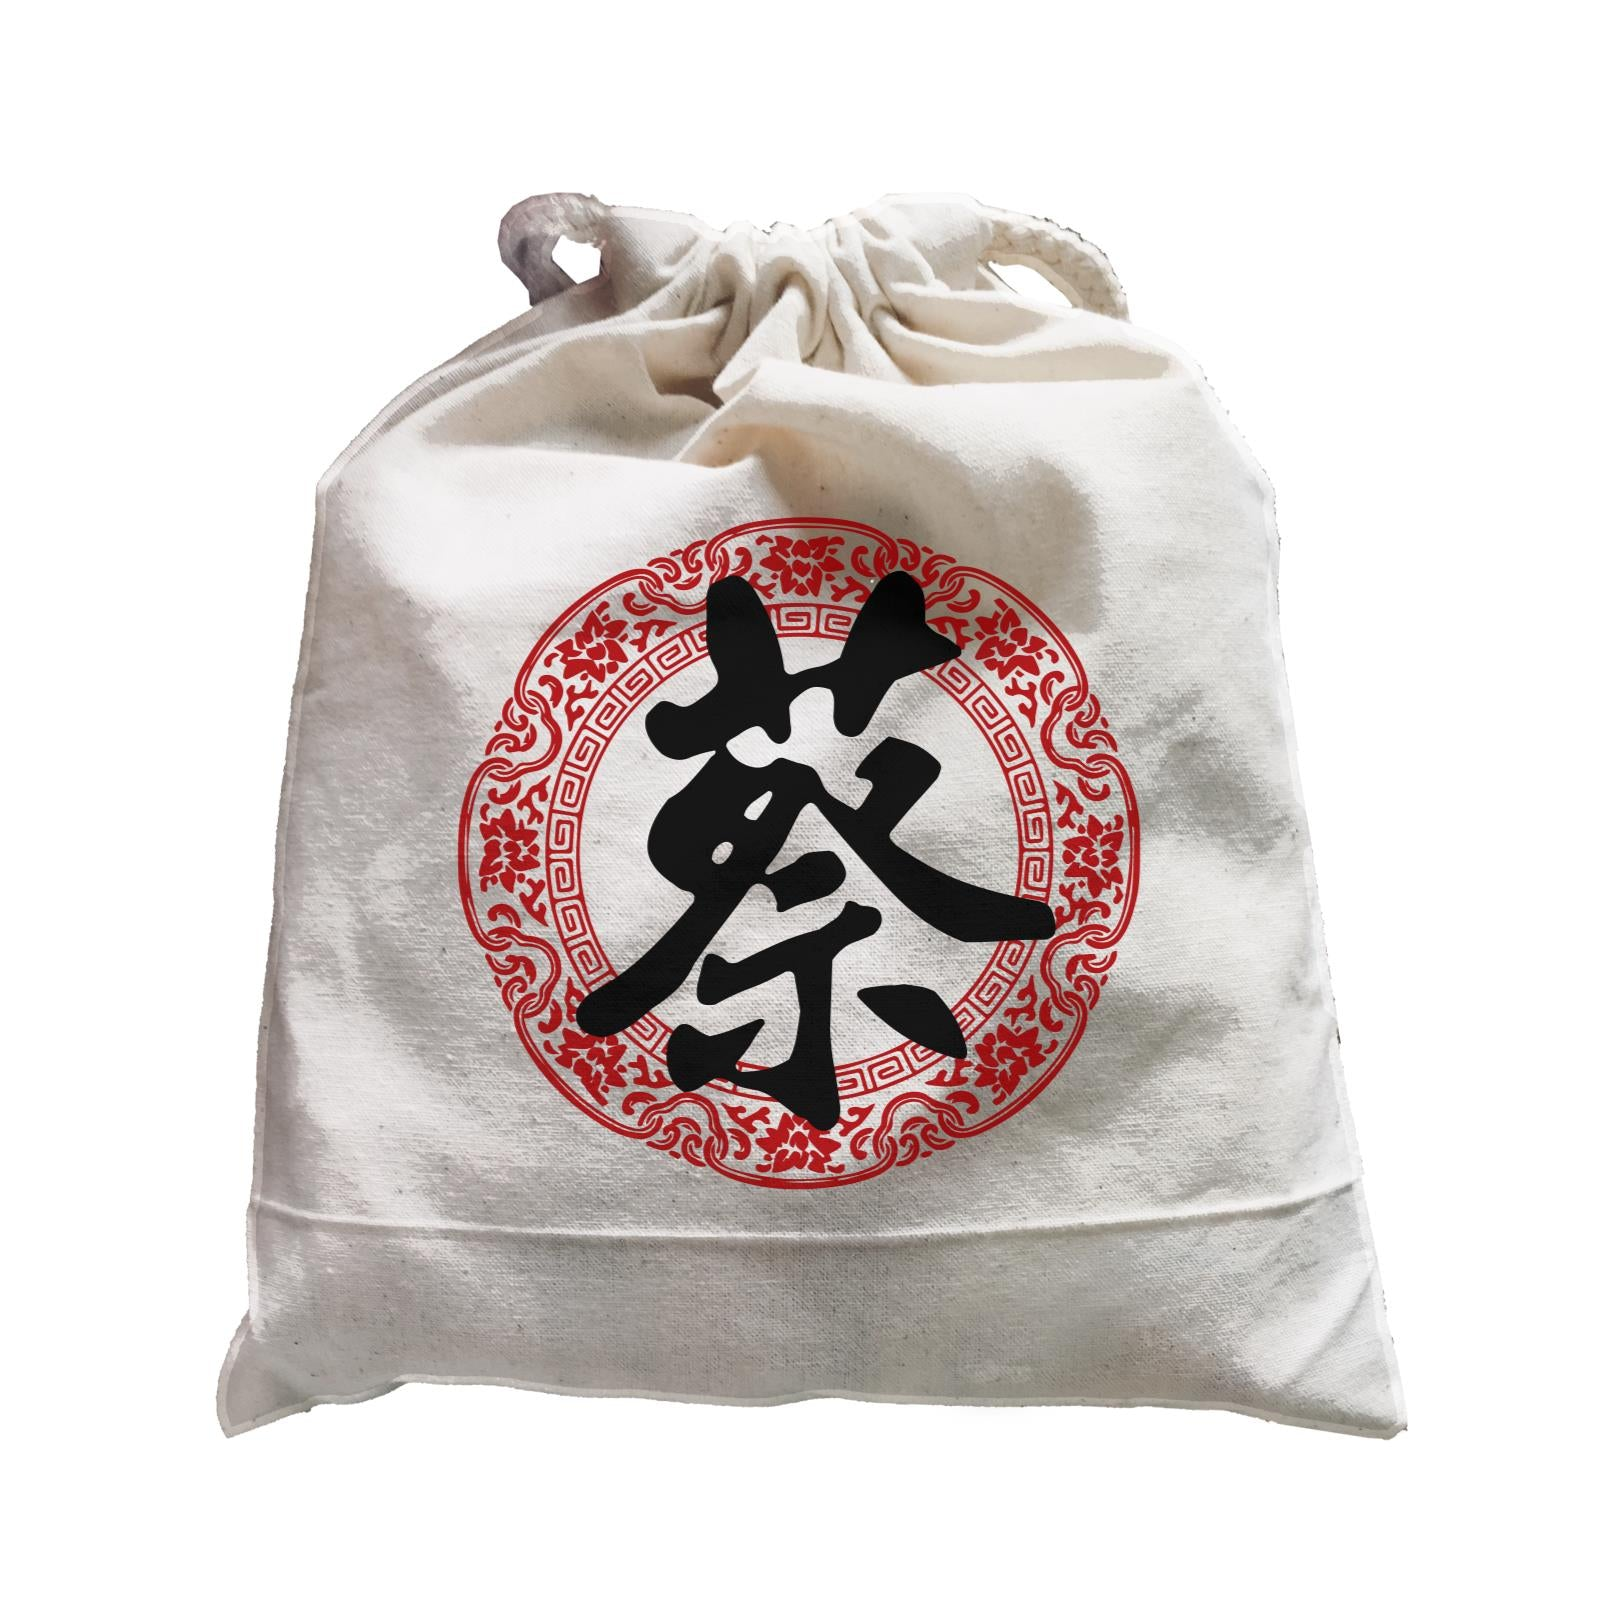 Chinese New Year Surname with Floral Emblem Ang Pao Bag Satchel  Personalizable Designs